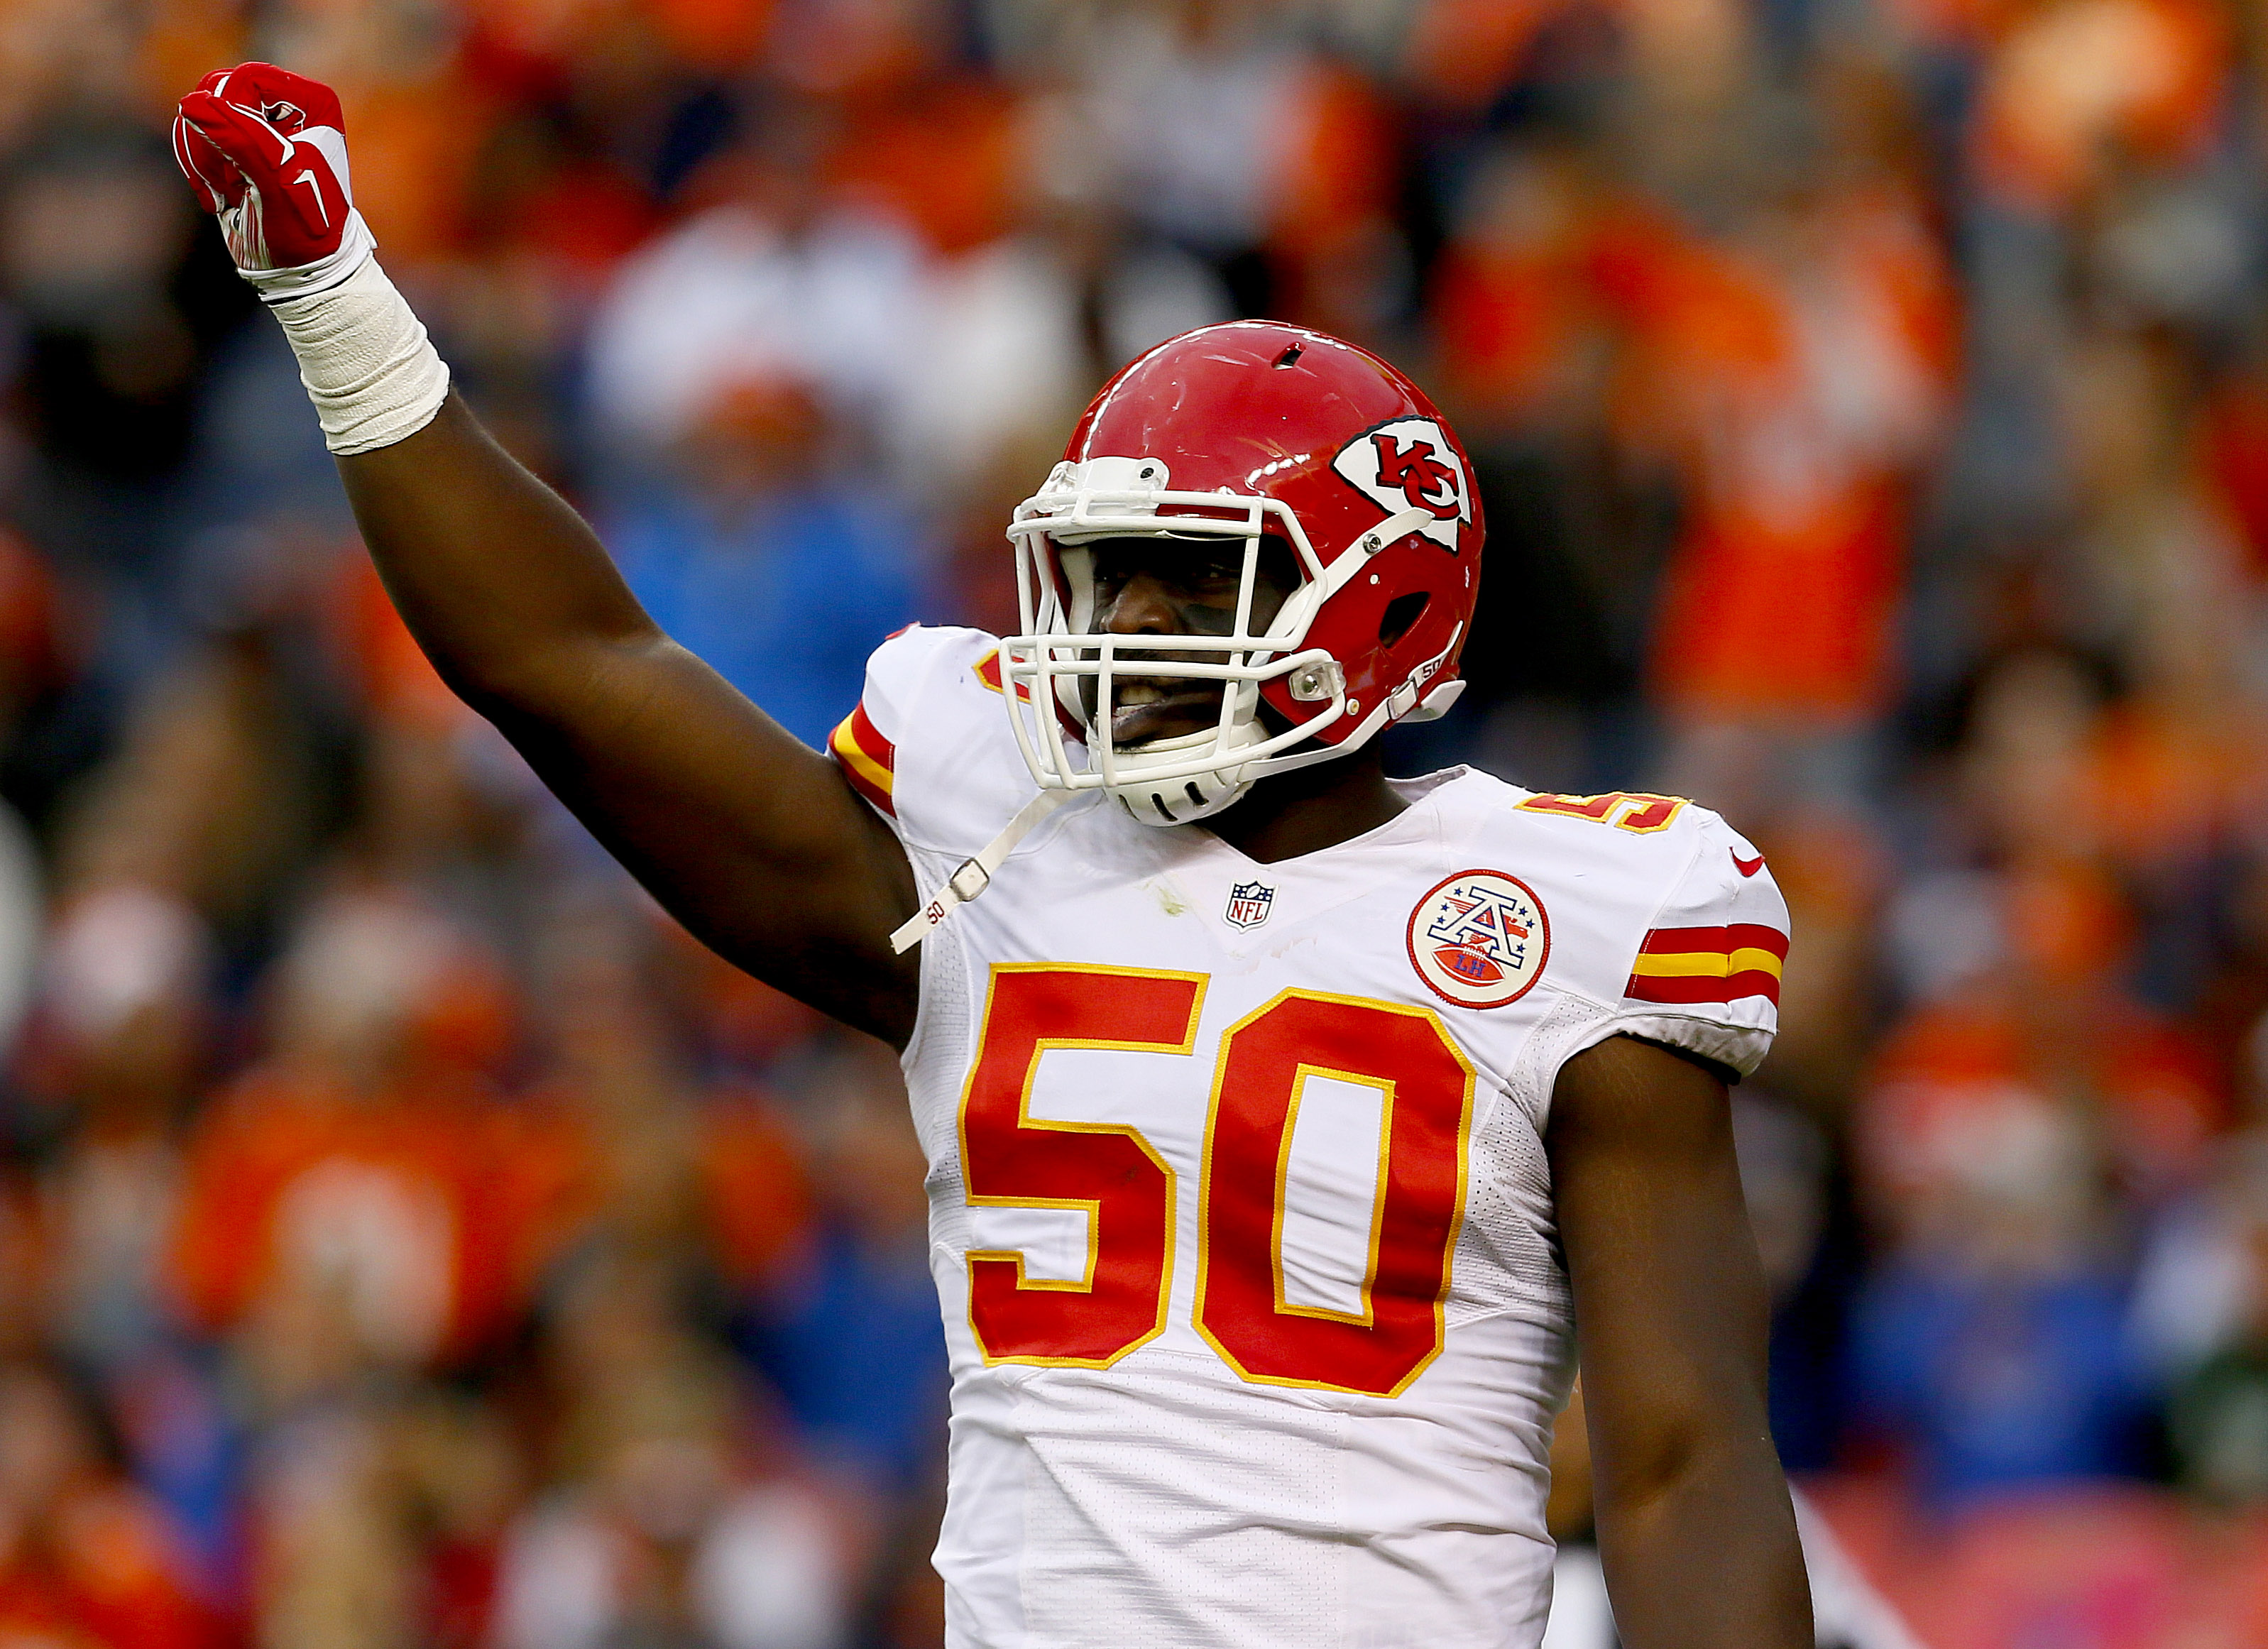 Kansas City Chiefs outside linebacker Justin Houston (50) celebrates a stop during the second half of an NFL football game against the Denver Broncos, Sunday, Nov. 15, 2015, in Denver. (AP Photo/Joe Mahoney)